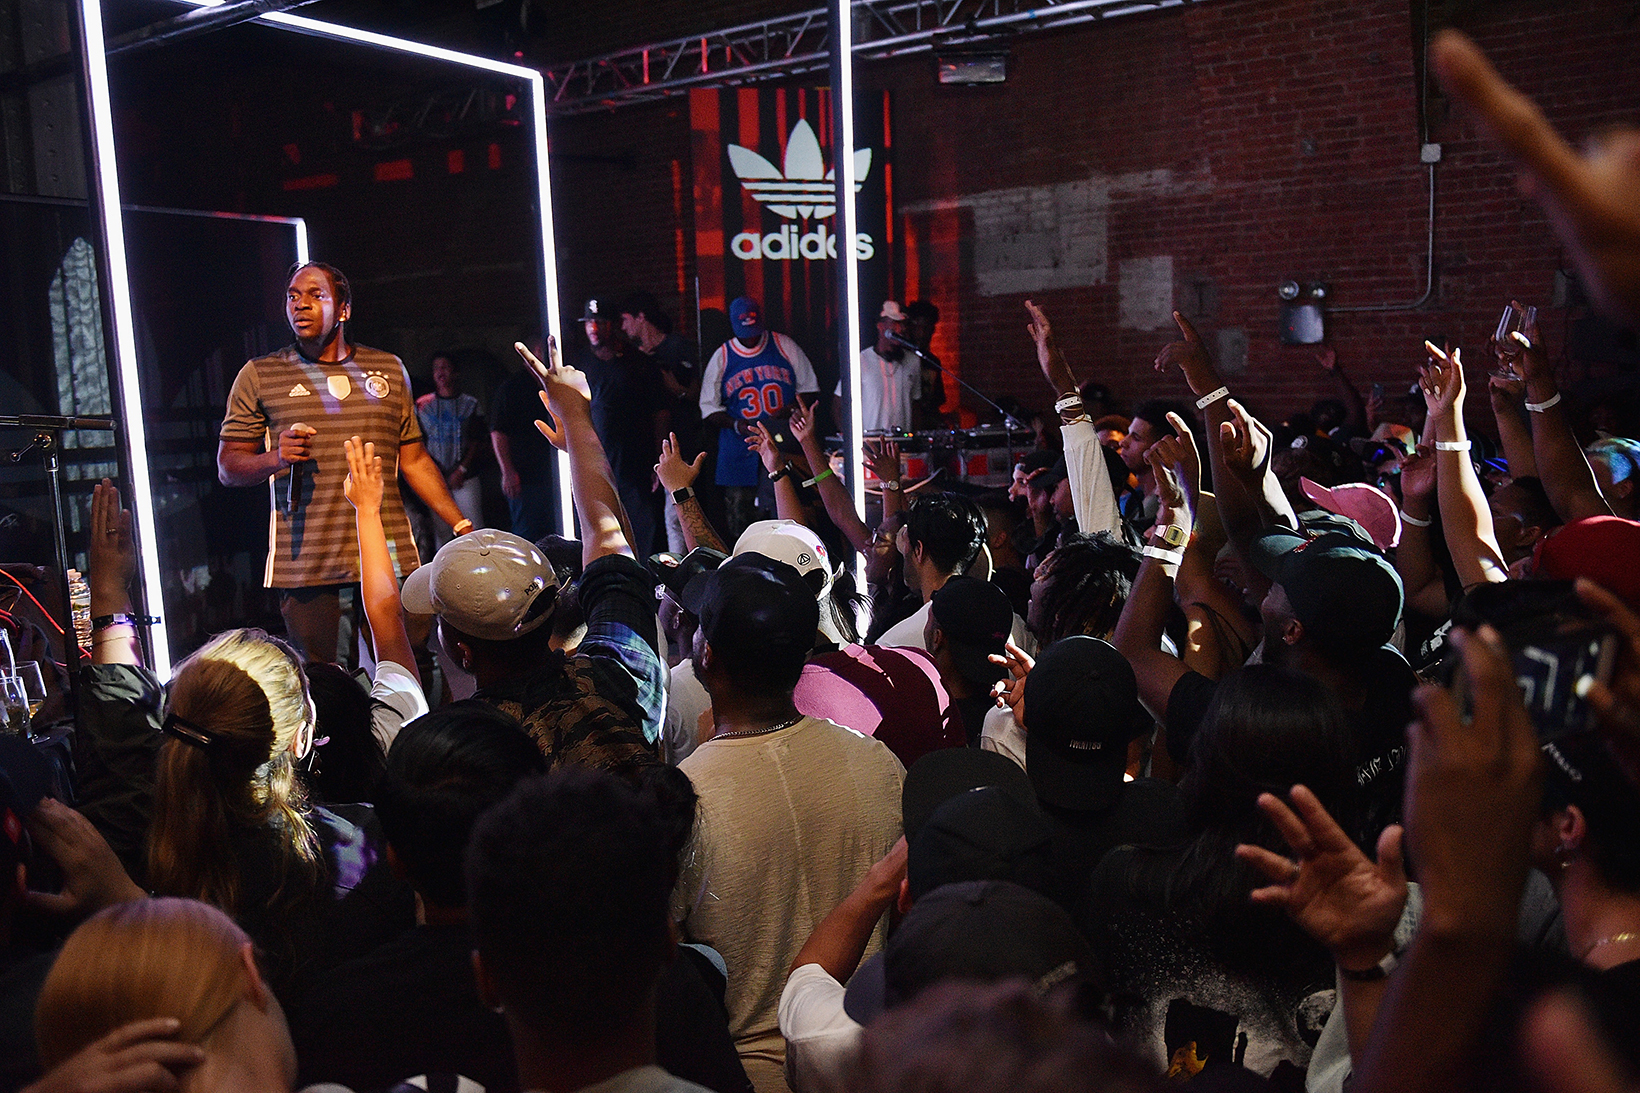 adidas, Pusha T and Desiigner Took NYC to One Last Night at Tunnel